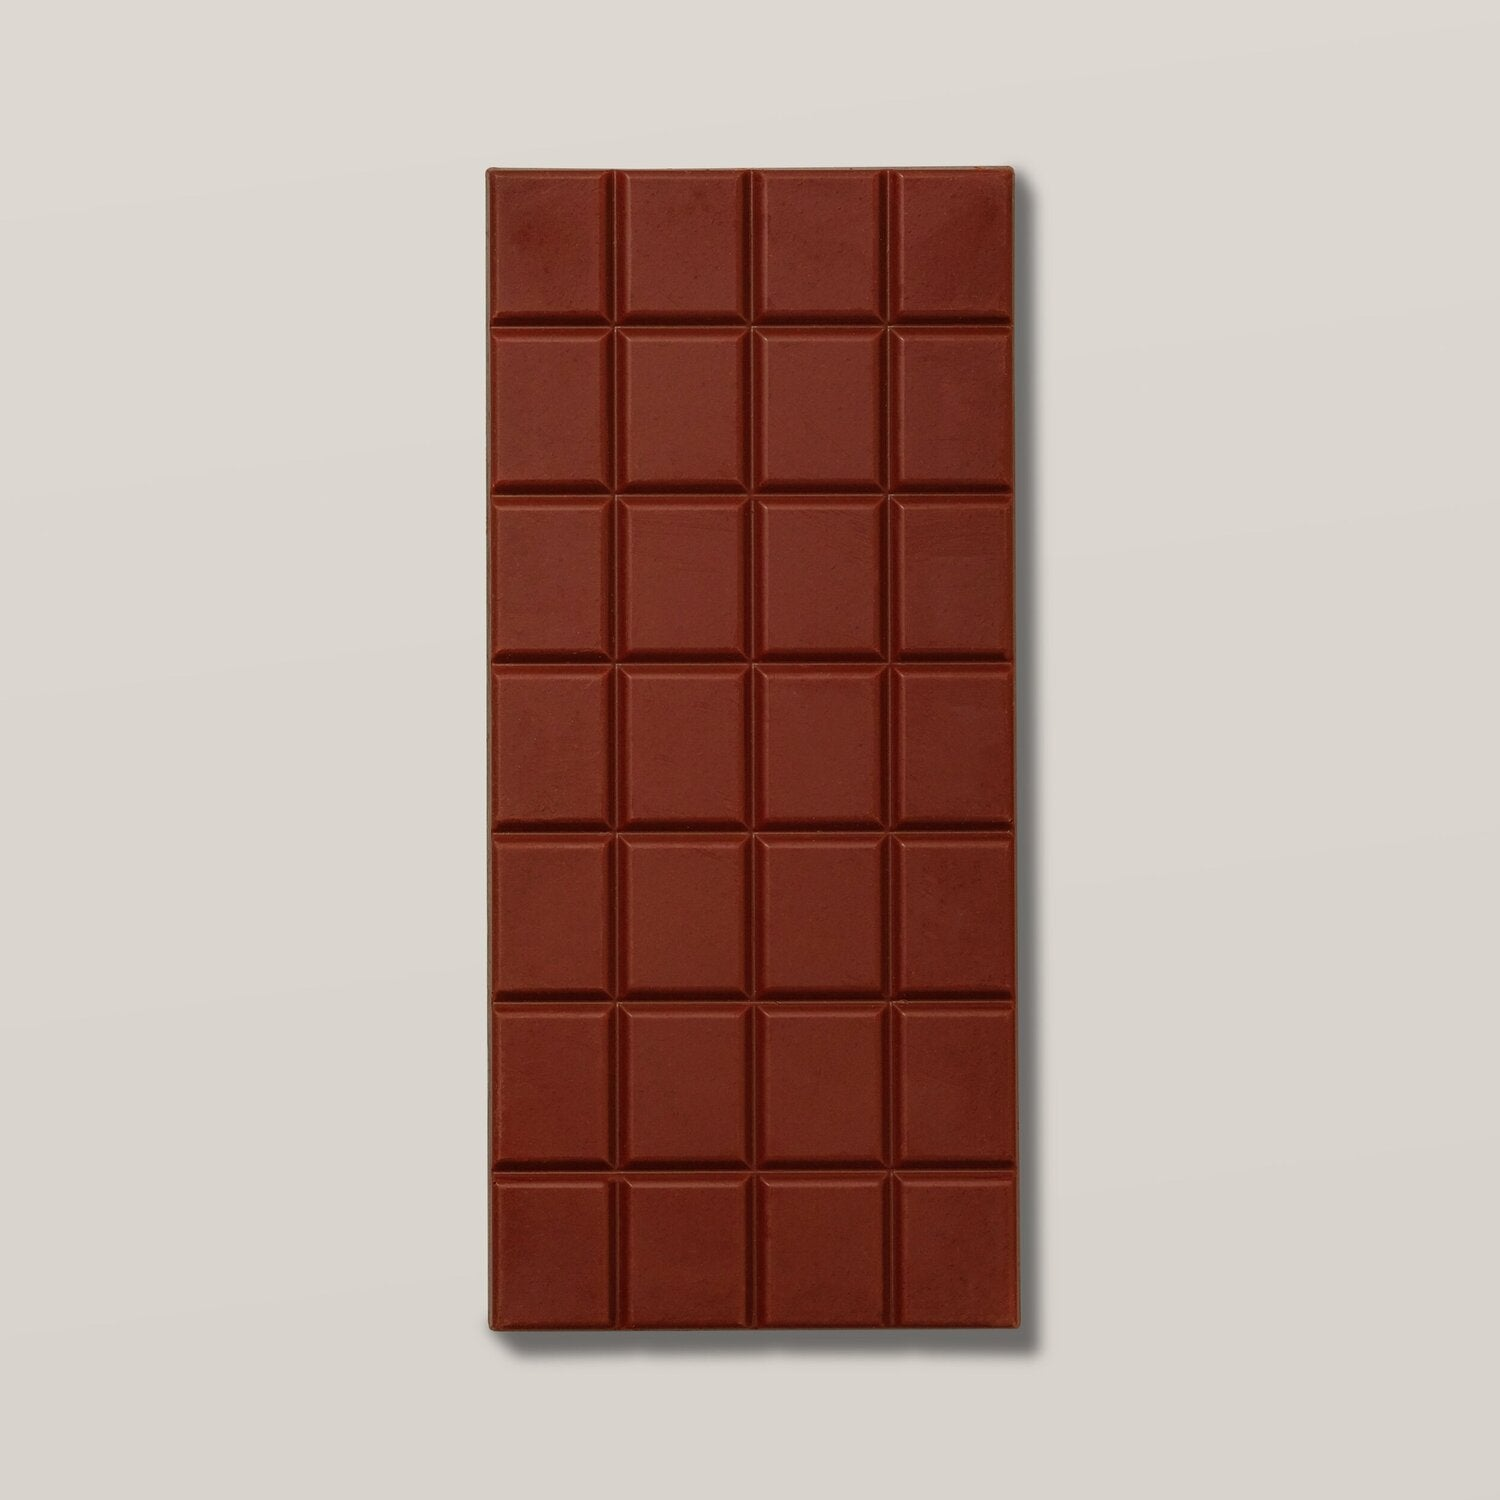 MAST Gourmet Chocolate